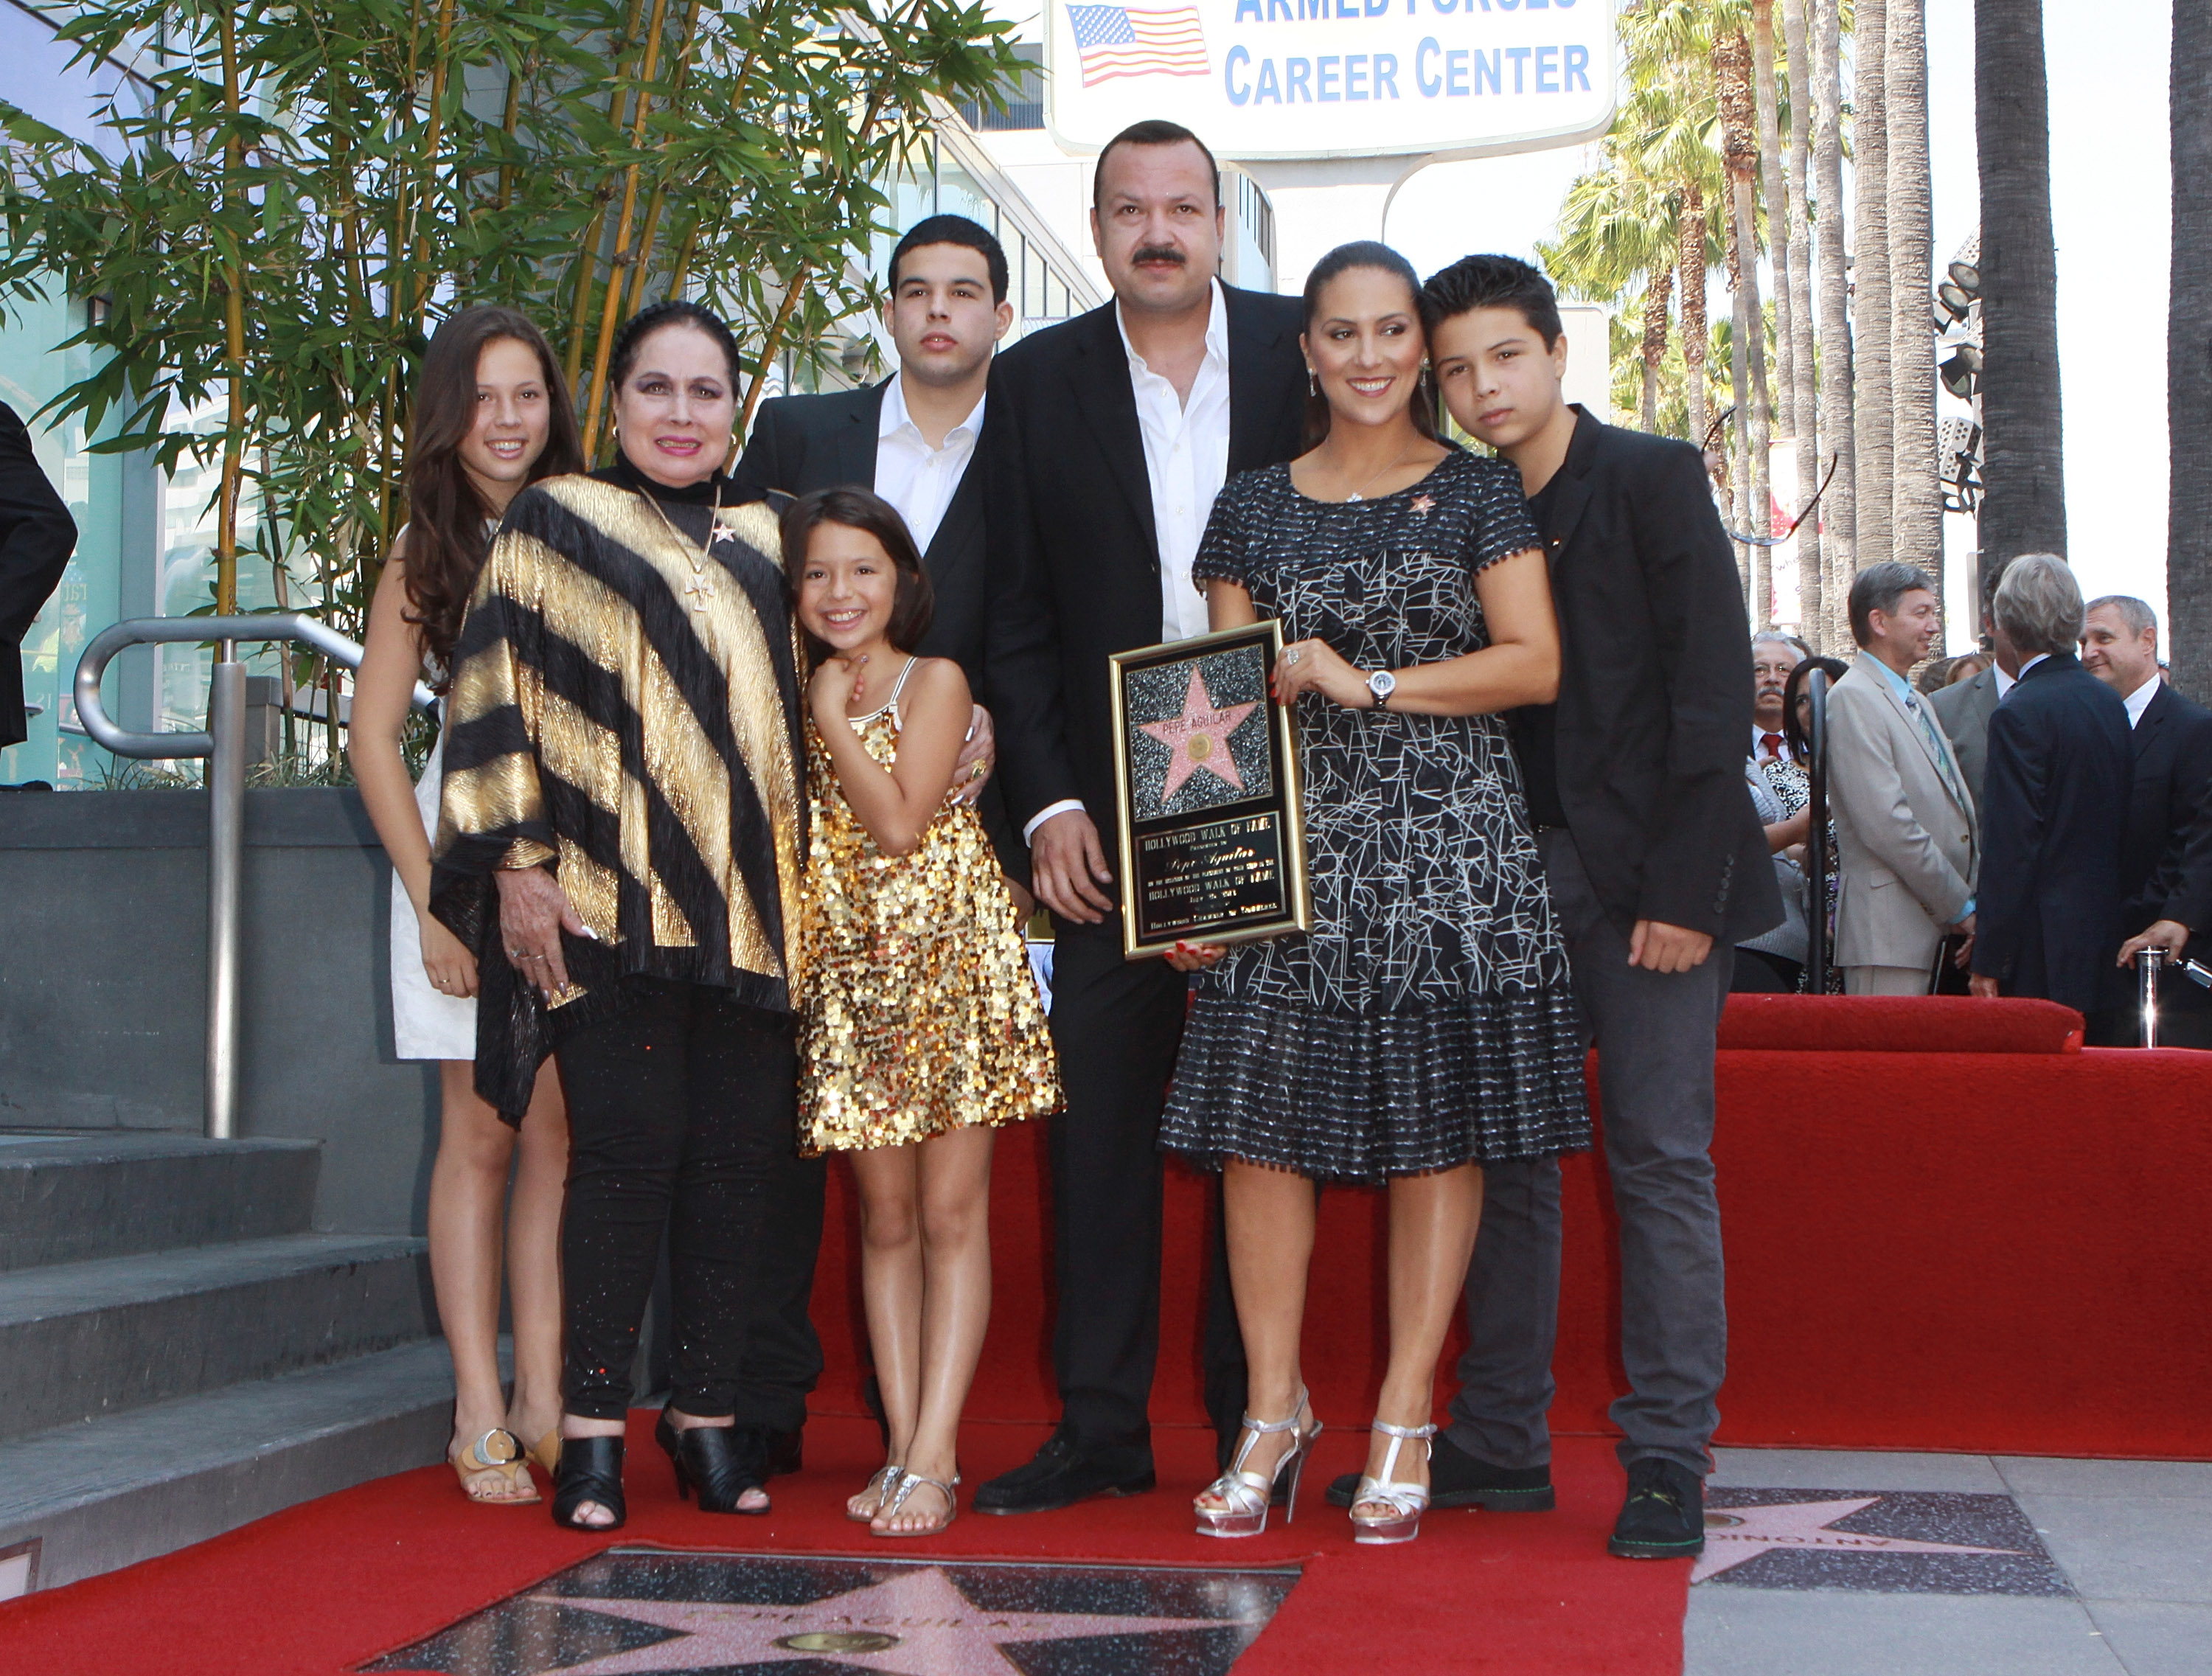 Latin Singer Pepe Aguilar Honored With Star On The Hollywood Walk Of Fame